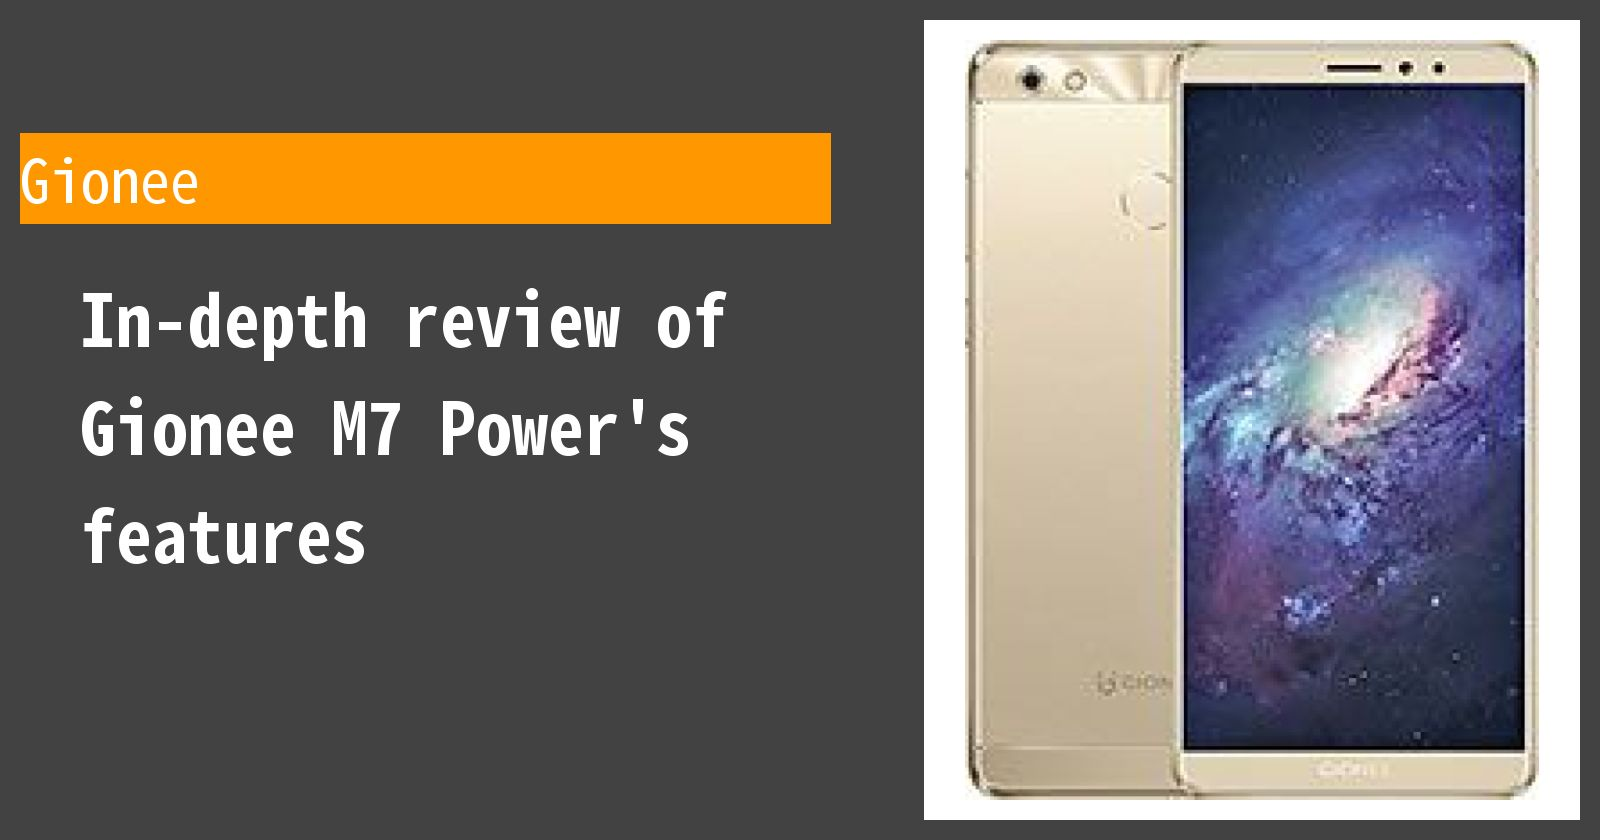 What are the advantages and disadvantages of Gionee M7 Power